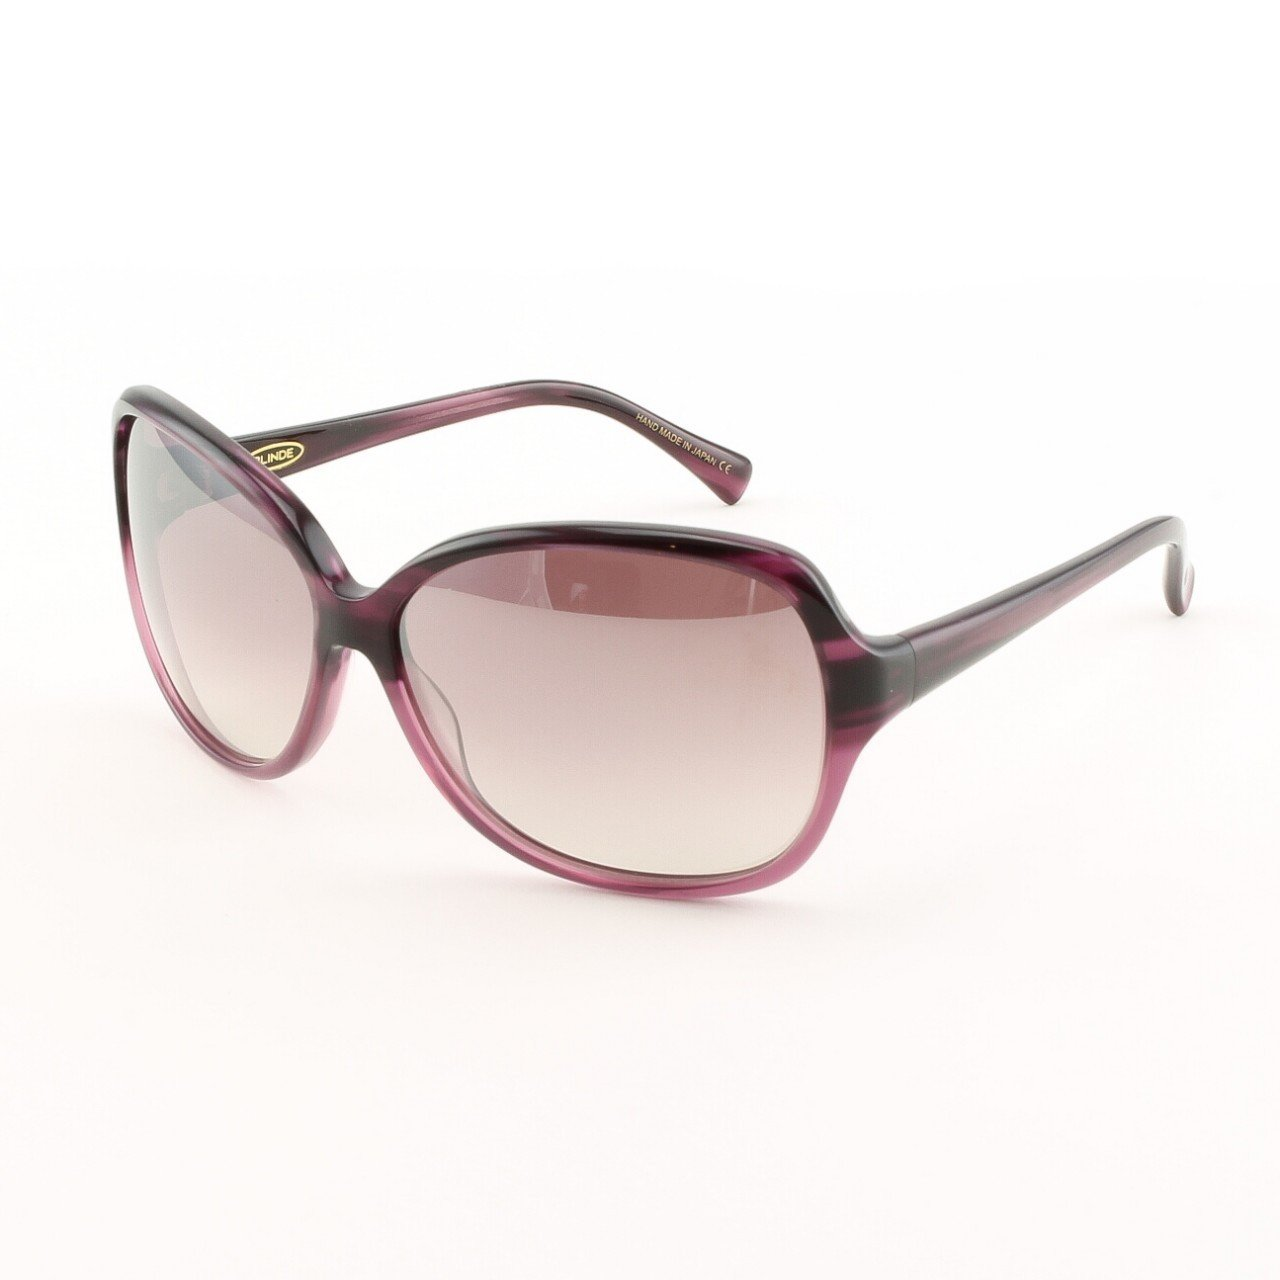 Blinde Now Behave Women's Sunglasses Col. Purple Striped Tortoise with Pink Gradient Lenses